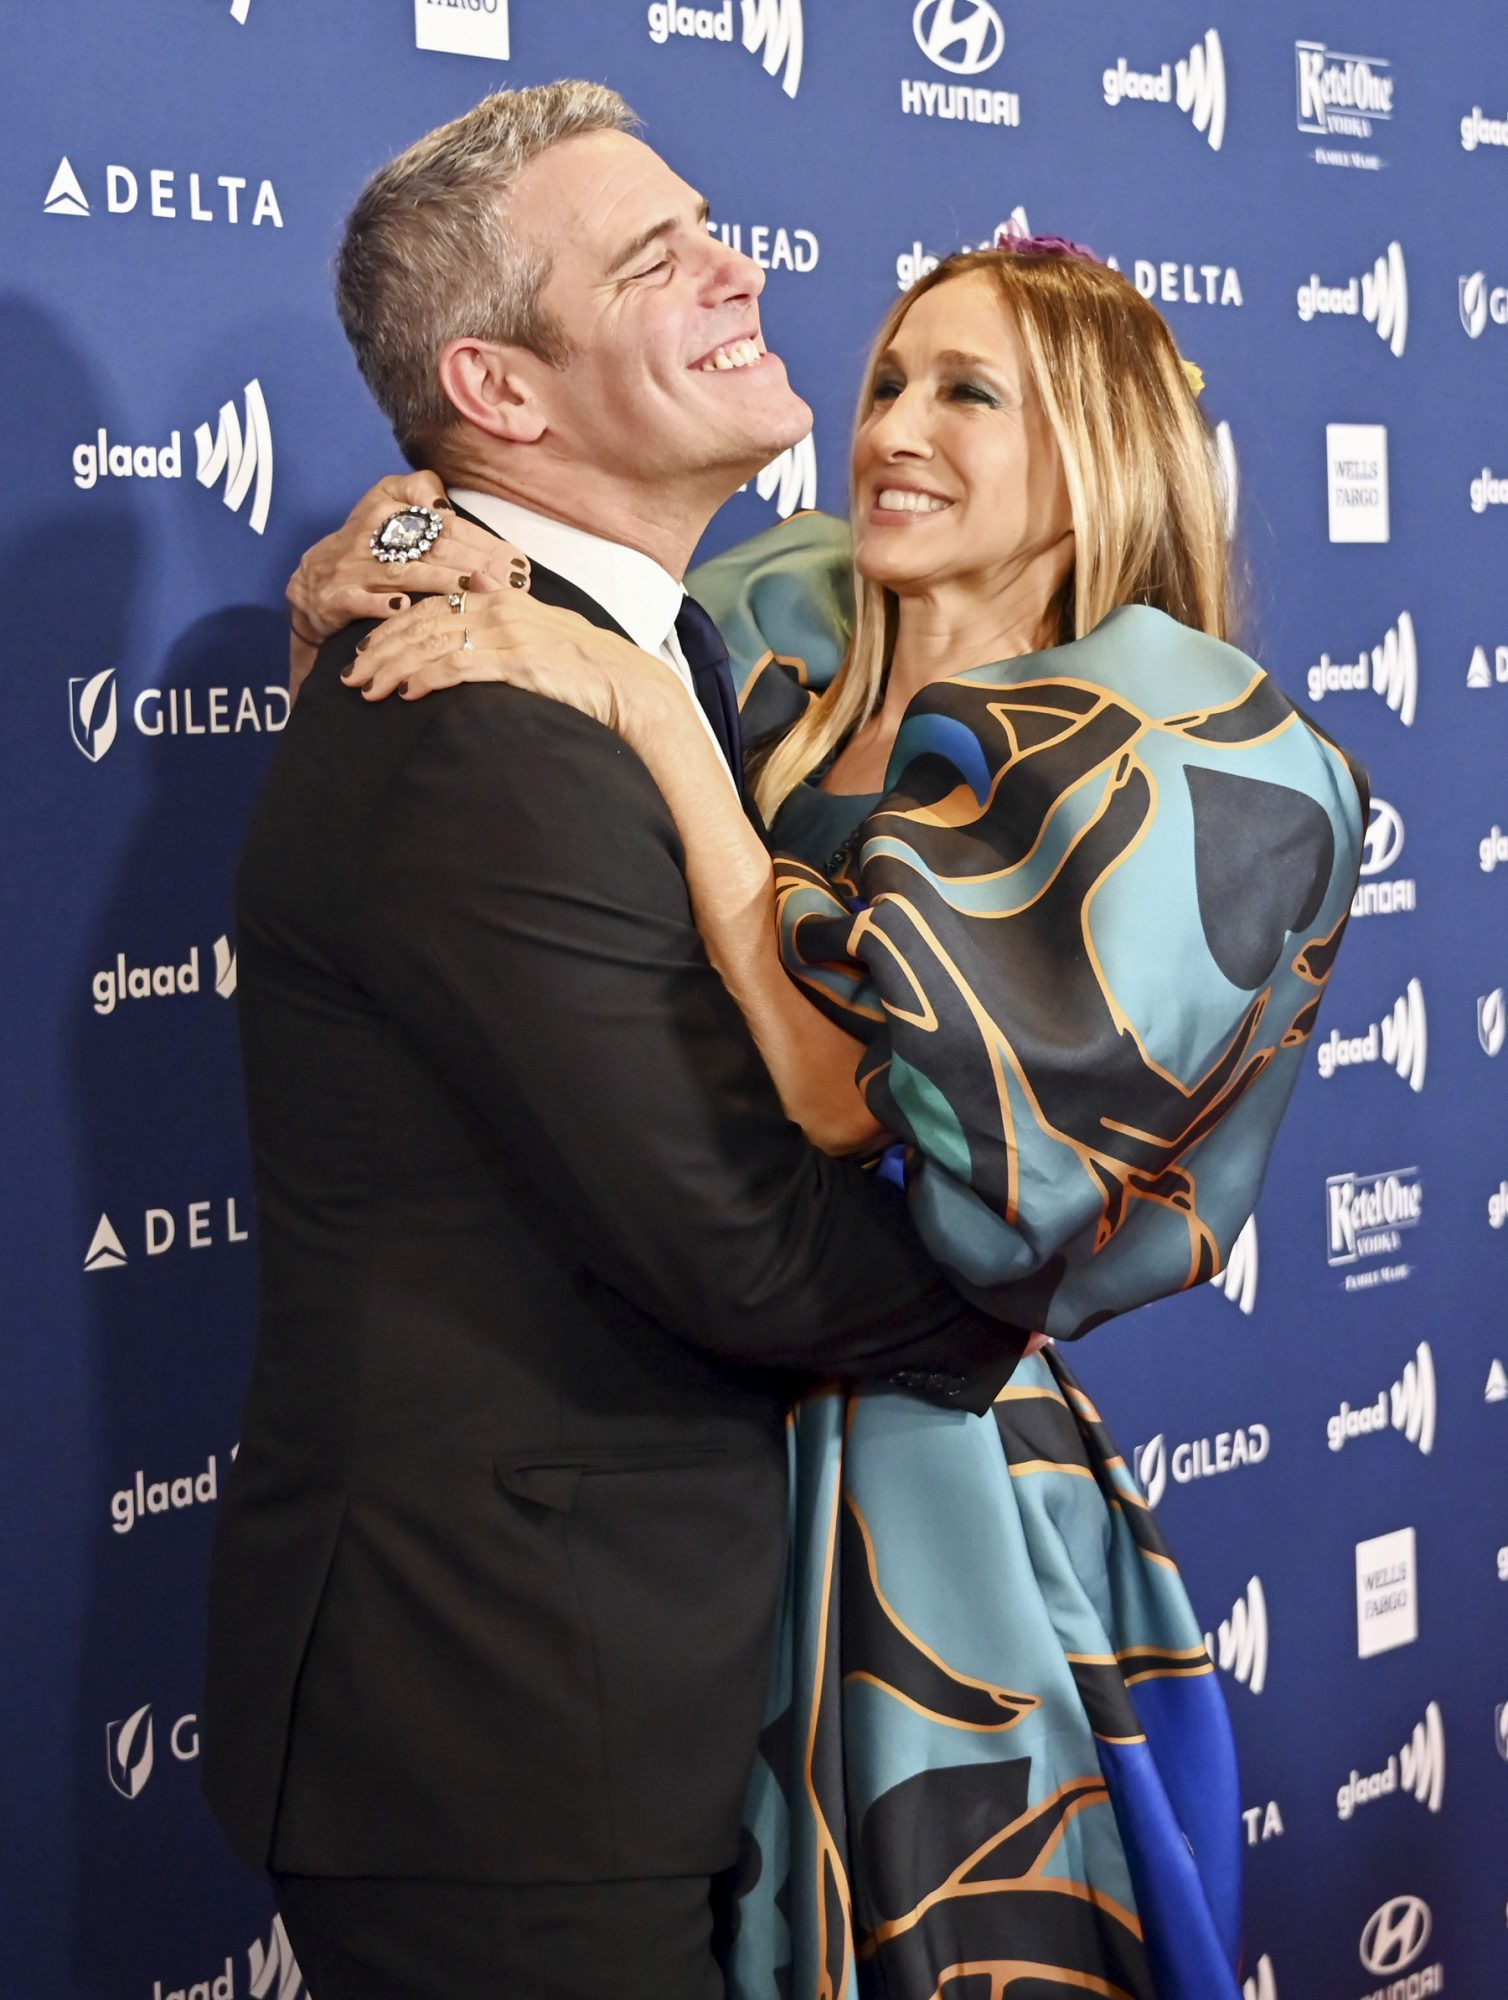 NEW YORK, NEW YORK - MAY 04: Andy Cohen and Sarah Jessica Parker attend the 30th Annual GLAAD Media Awards in partnership with Ketel One Family-Made Vodka, longstanding ally of the LGBTQ community on May 04, 2019 in New York City. (Photo by Astrid Stawiarz/Getty Images for Ketel One Family-Made Vodka)